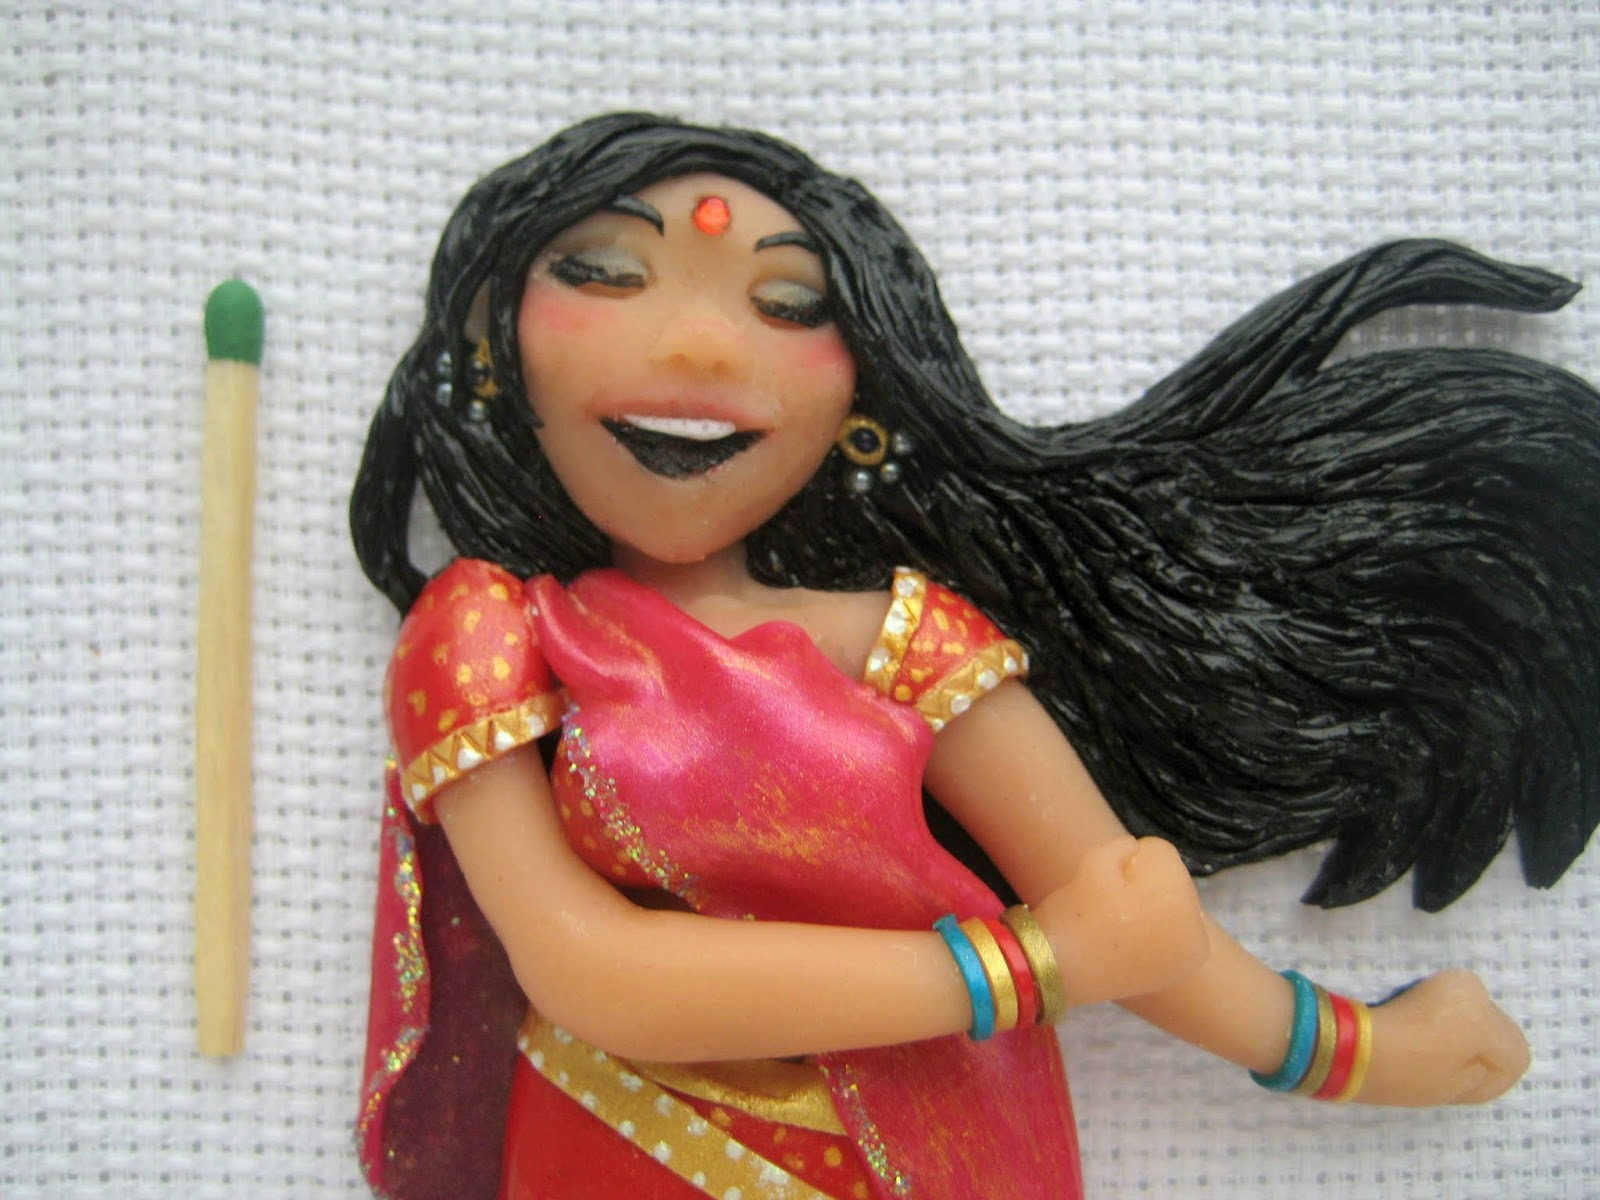 fridgemagnet, India, girl, dance, handcrafted, Etsy